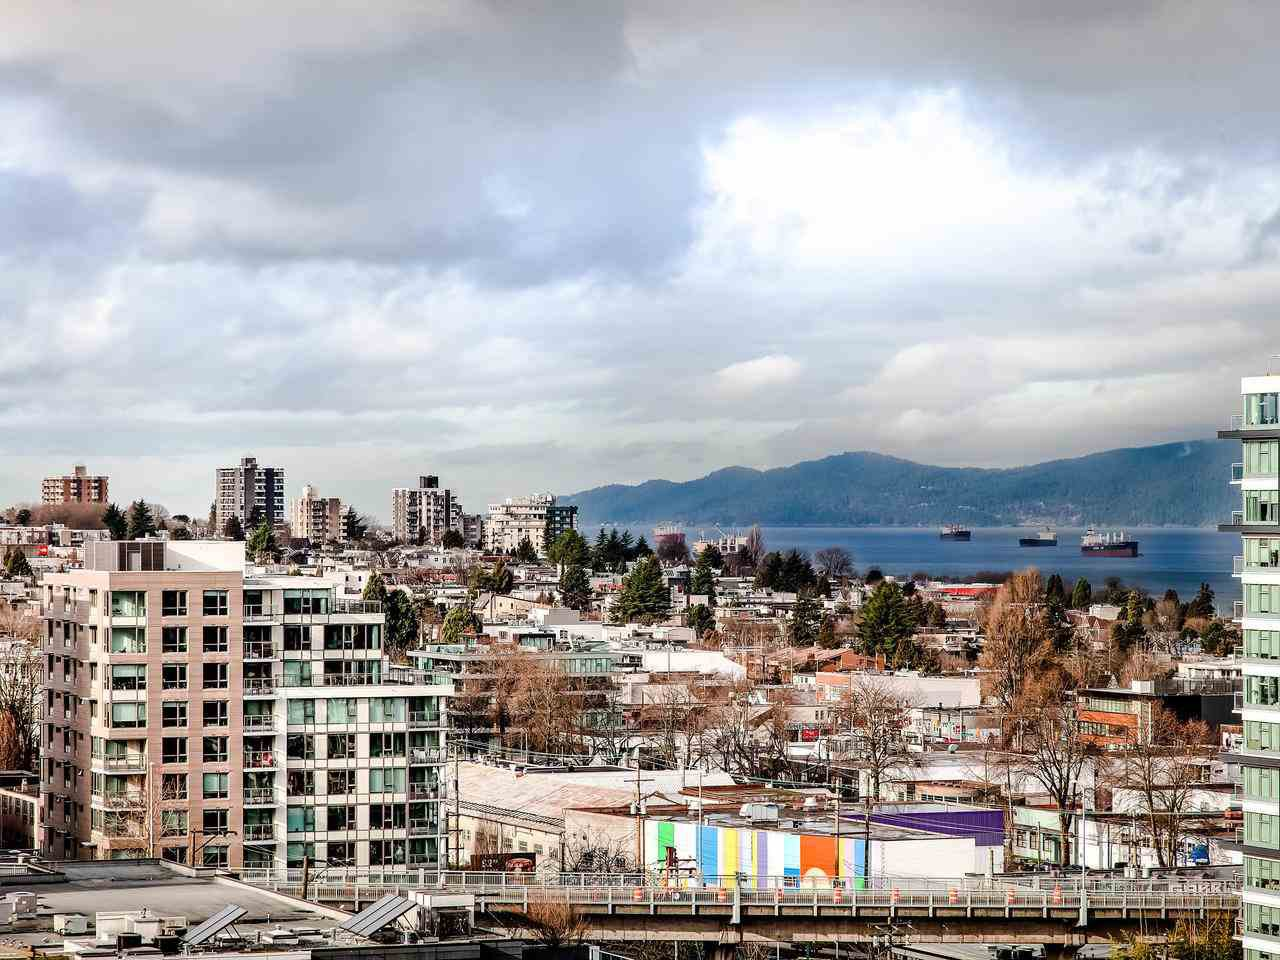 """Main Photo: 1003 1438 W 7TH Avenue in Vancouver: Fairview VW Condo for sale in """"DIAMOND ROBINSON"""" (Vancouver West)  : MLS®# R2445837"""